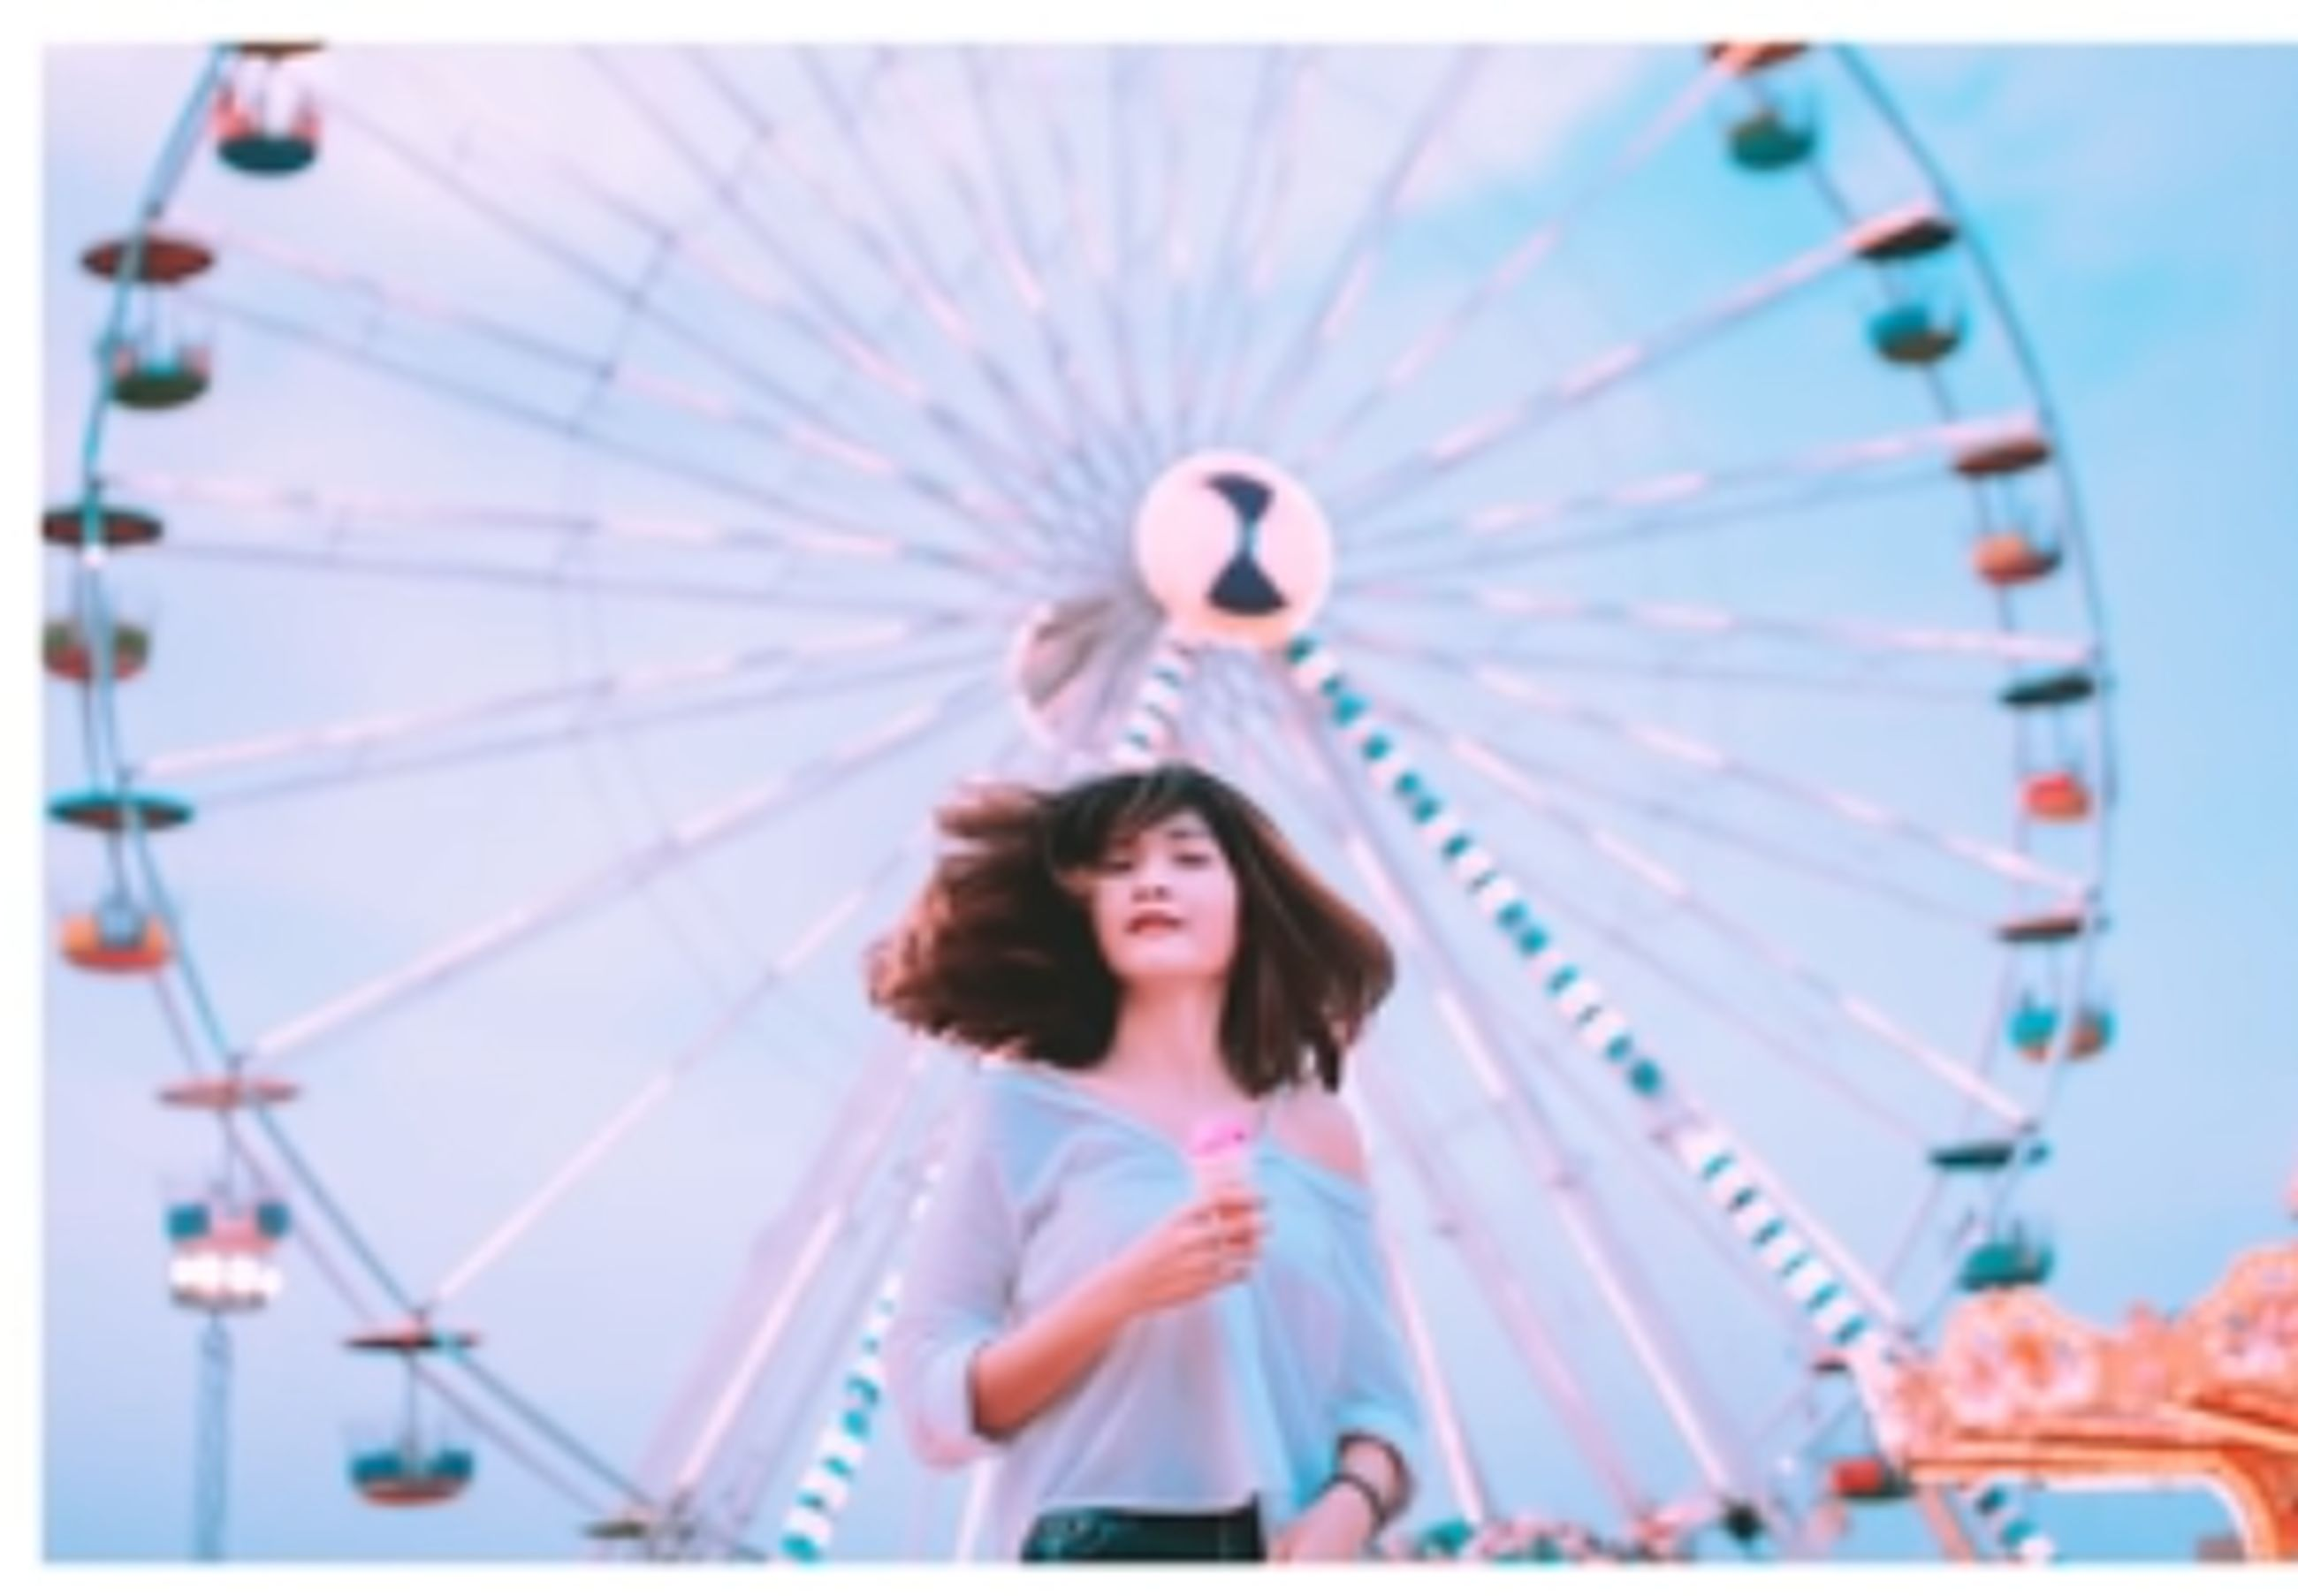 amusement park ride, ferris wheel, amusement park, leisure activity, arts culture and entertainment, women, real people, lifestyles, two people, front view, portrait, enjoyment, young adult, casual clothing, people, adult, sky, girls, low angle view, hairstyle